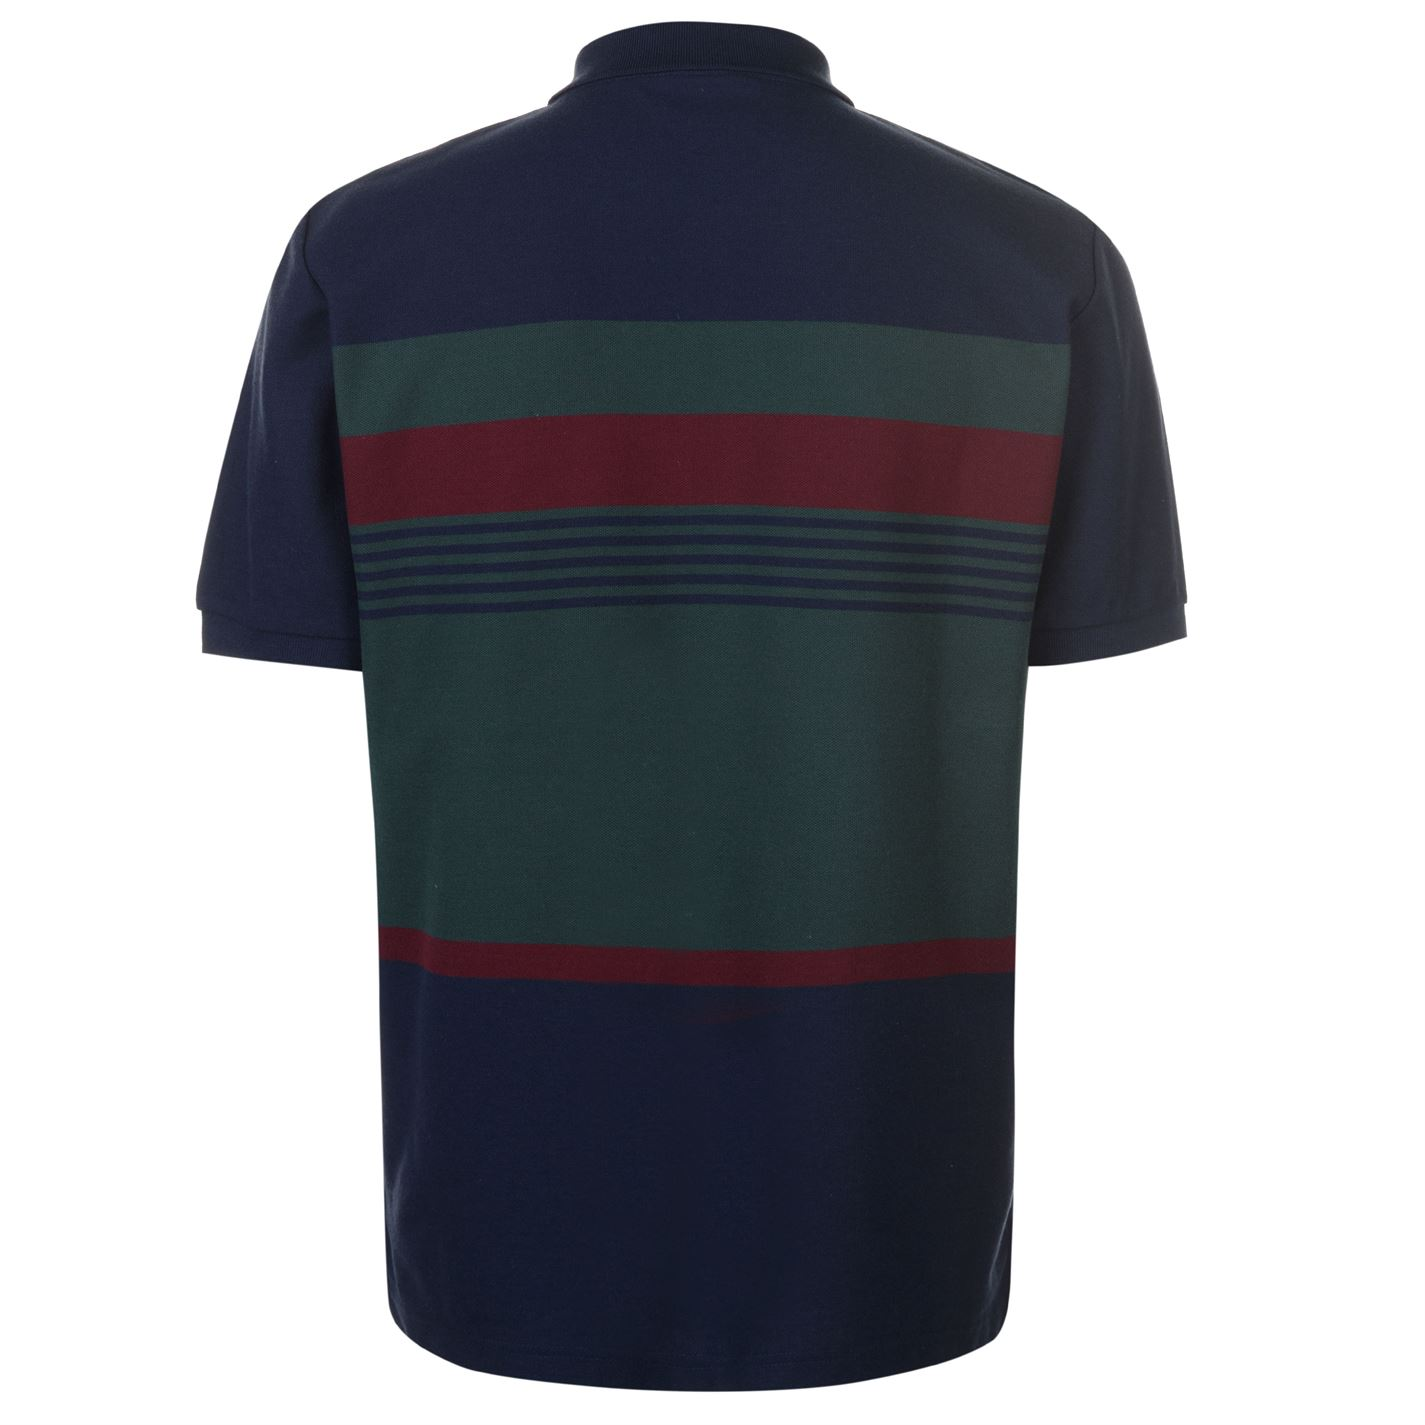 Lonsdale-Mens-Stripe-Polo-Shirt-Classic-Fit-Tee-Top-Short-Sleeve-Button-Placket thumbnail 8